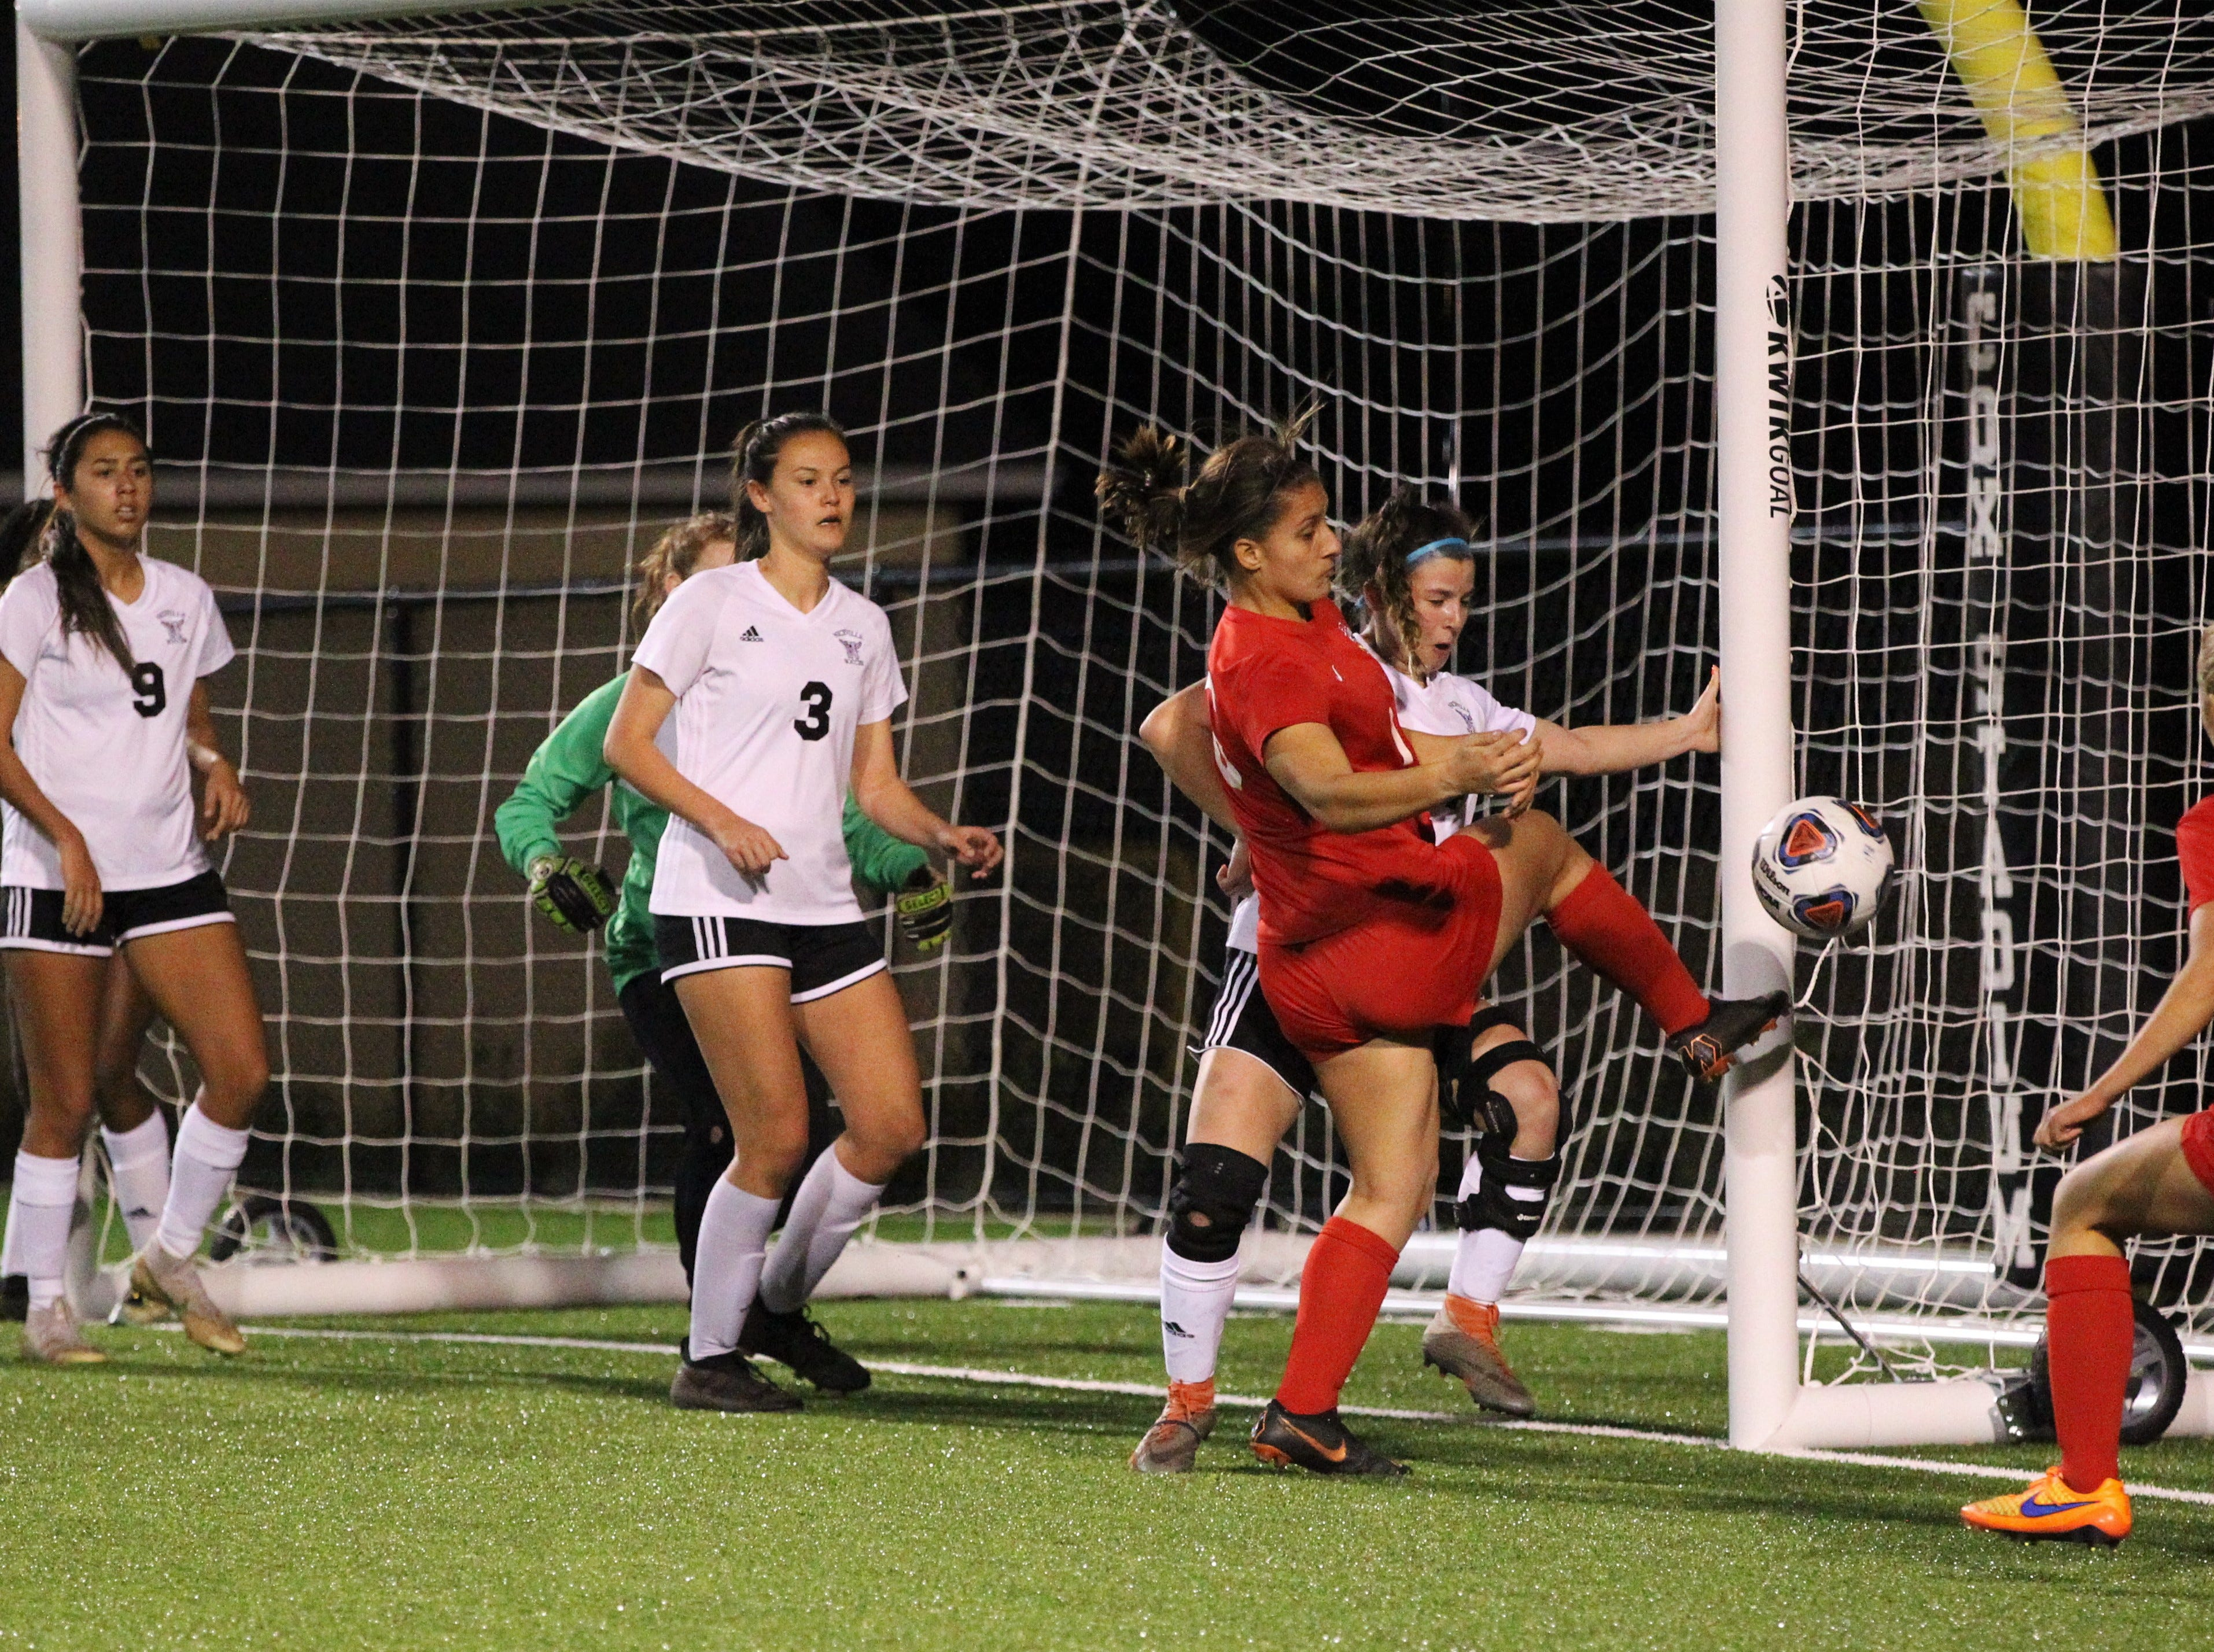 A Leon corner kick can't be cleared by Niceville, providing an opportunity for Eden Kirn (16) at goal but a Niceville defender provides just enough of a block as Niceville's girls soccer team beat Leon 1-0 in a Region 1-4A semifinal at Gene Cox Stadium on Jan. 8, 2019.